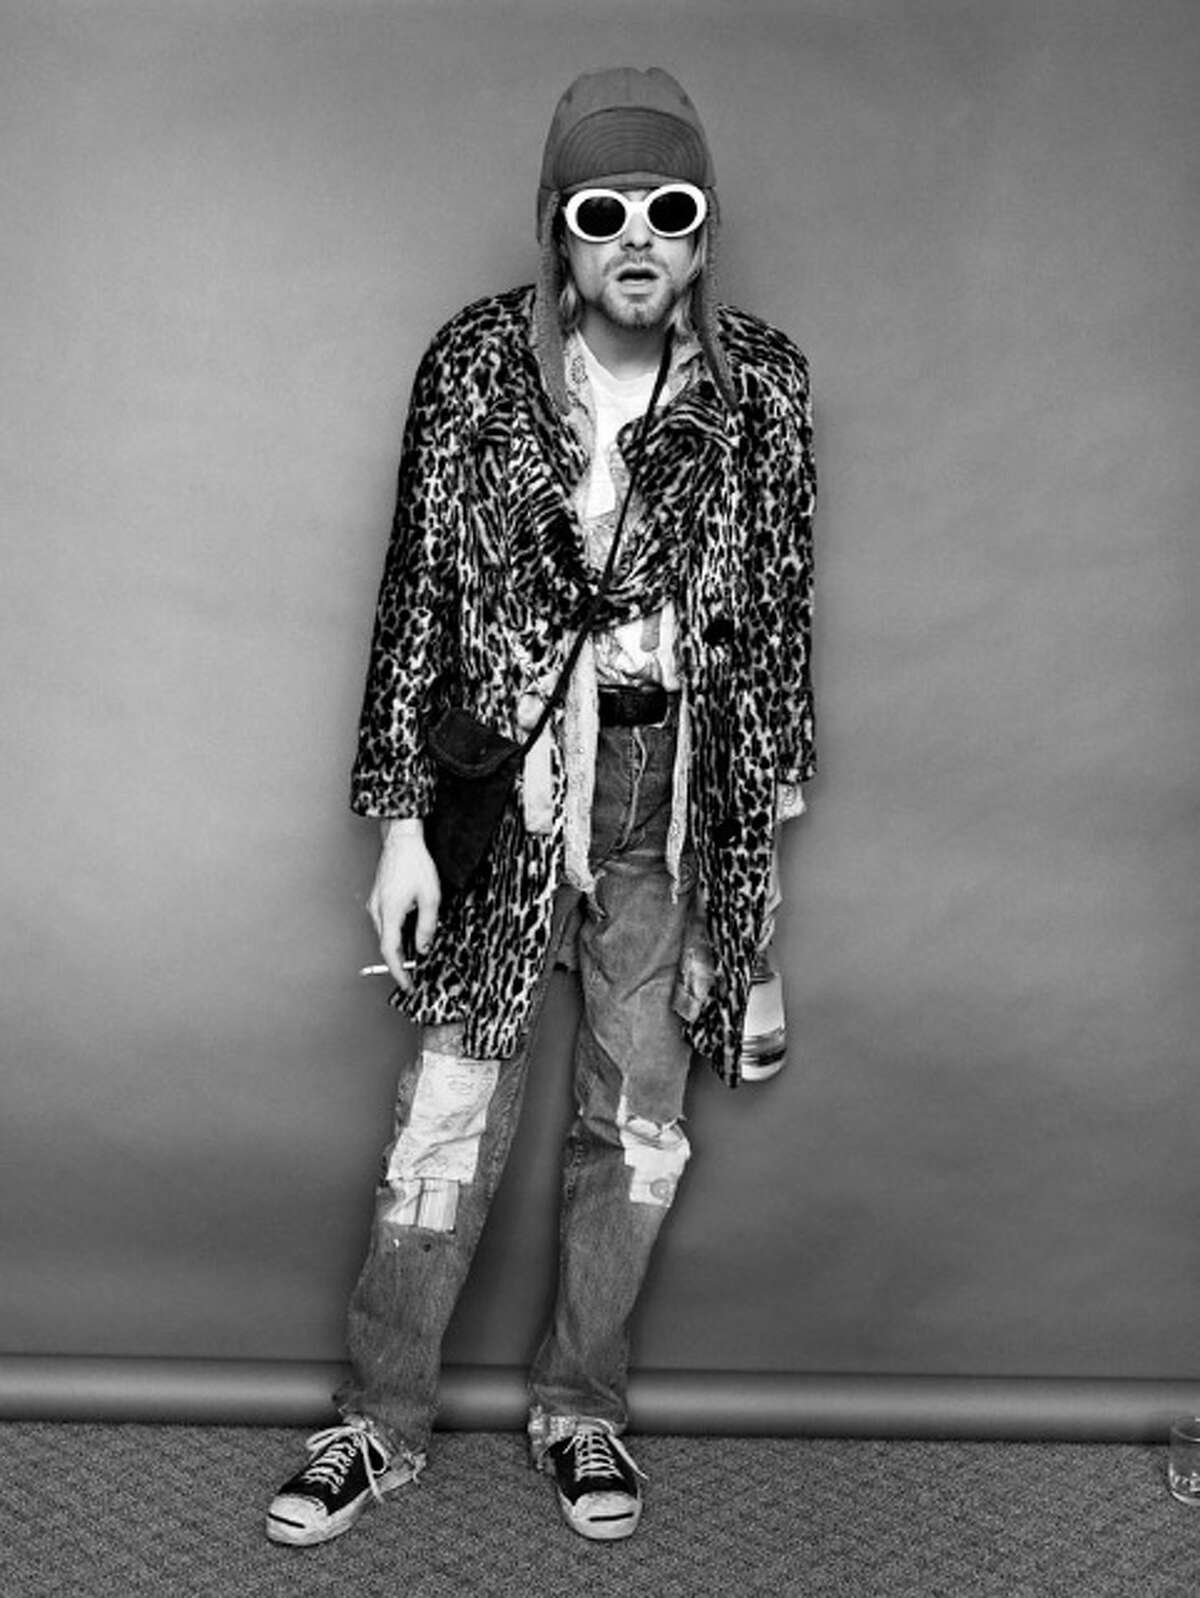 A drug-addled Kurt Cobain was obliging, even playful, for the photo shoot, Jesse Frohman said. Less than six months later, Cobain took his own life.